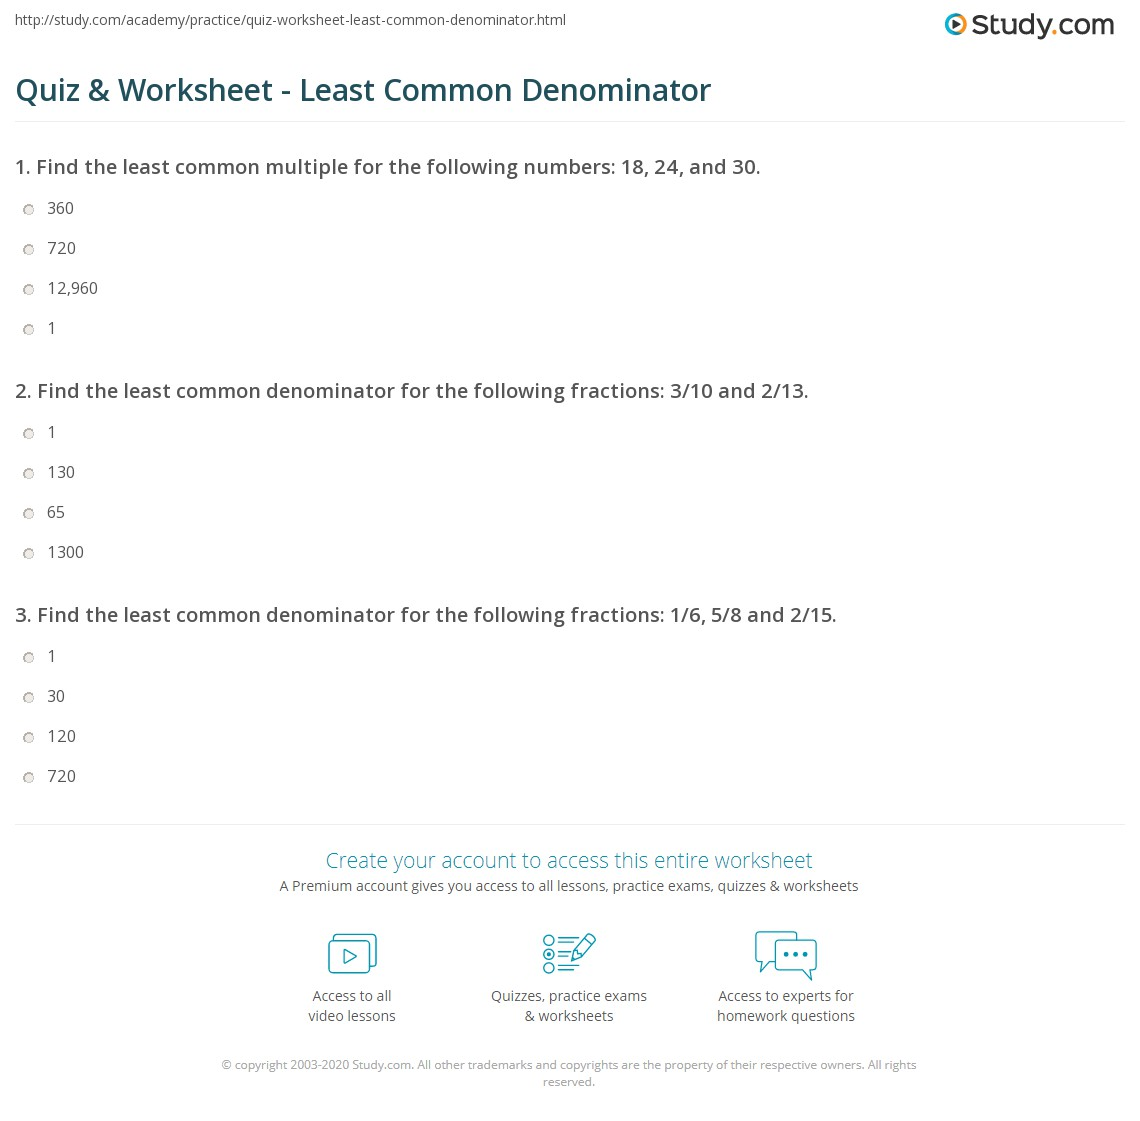 Quiz & Worksheet - Least Common Denominator | Study.com